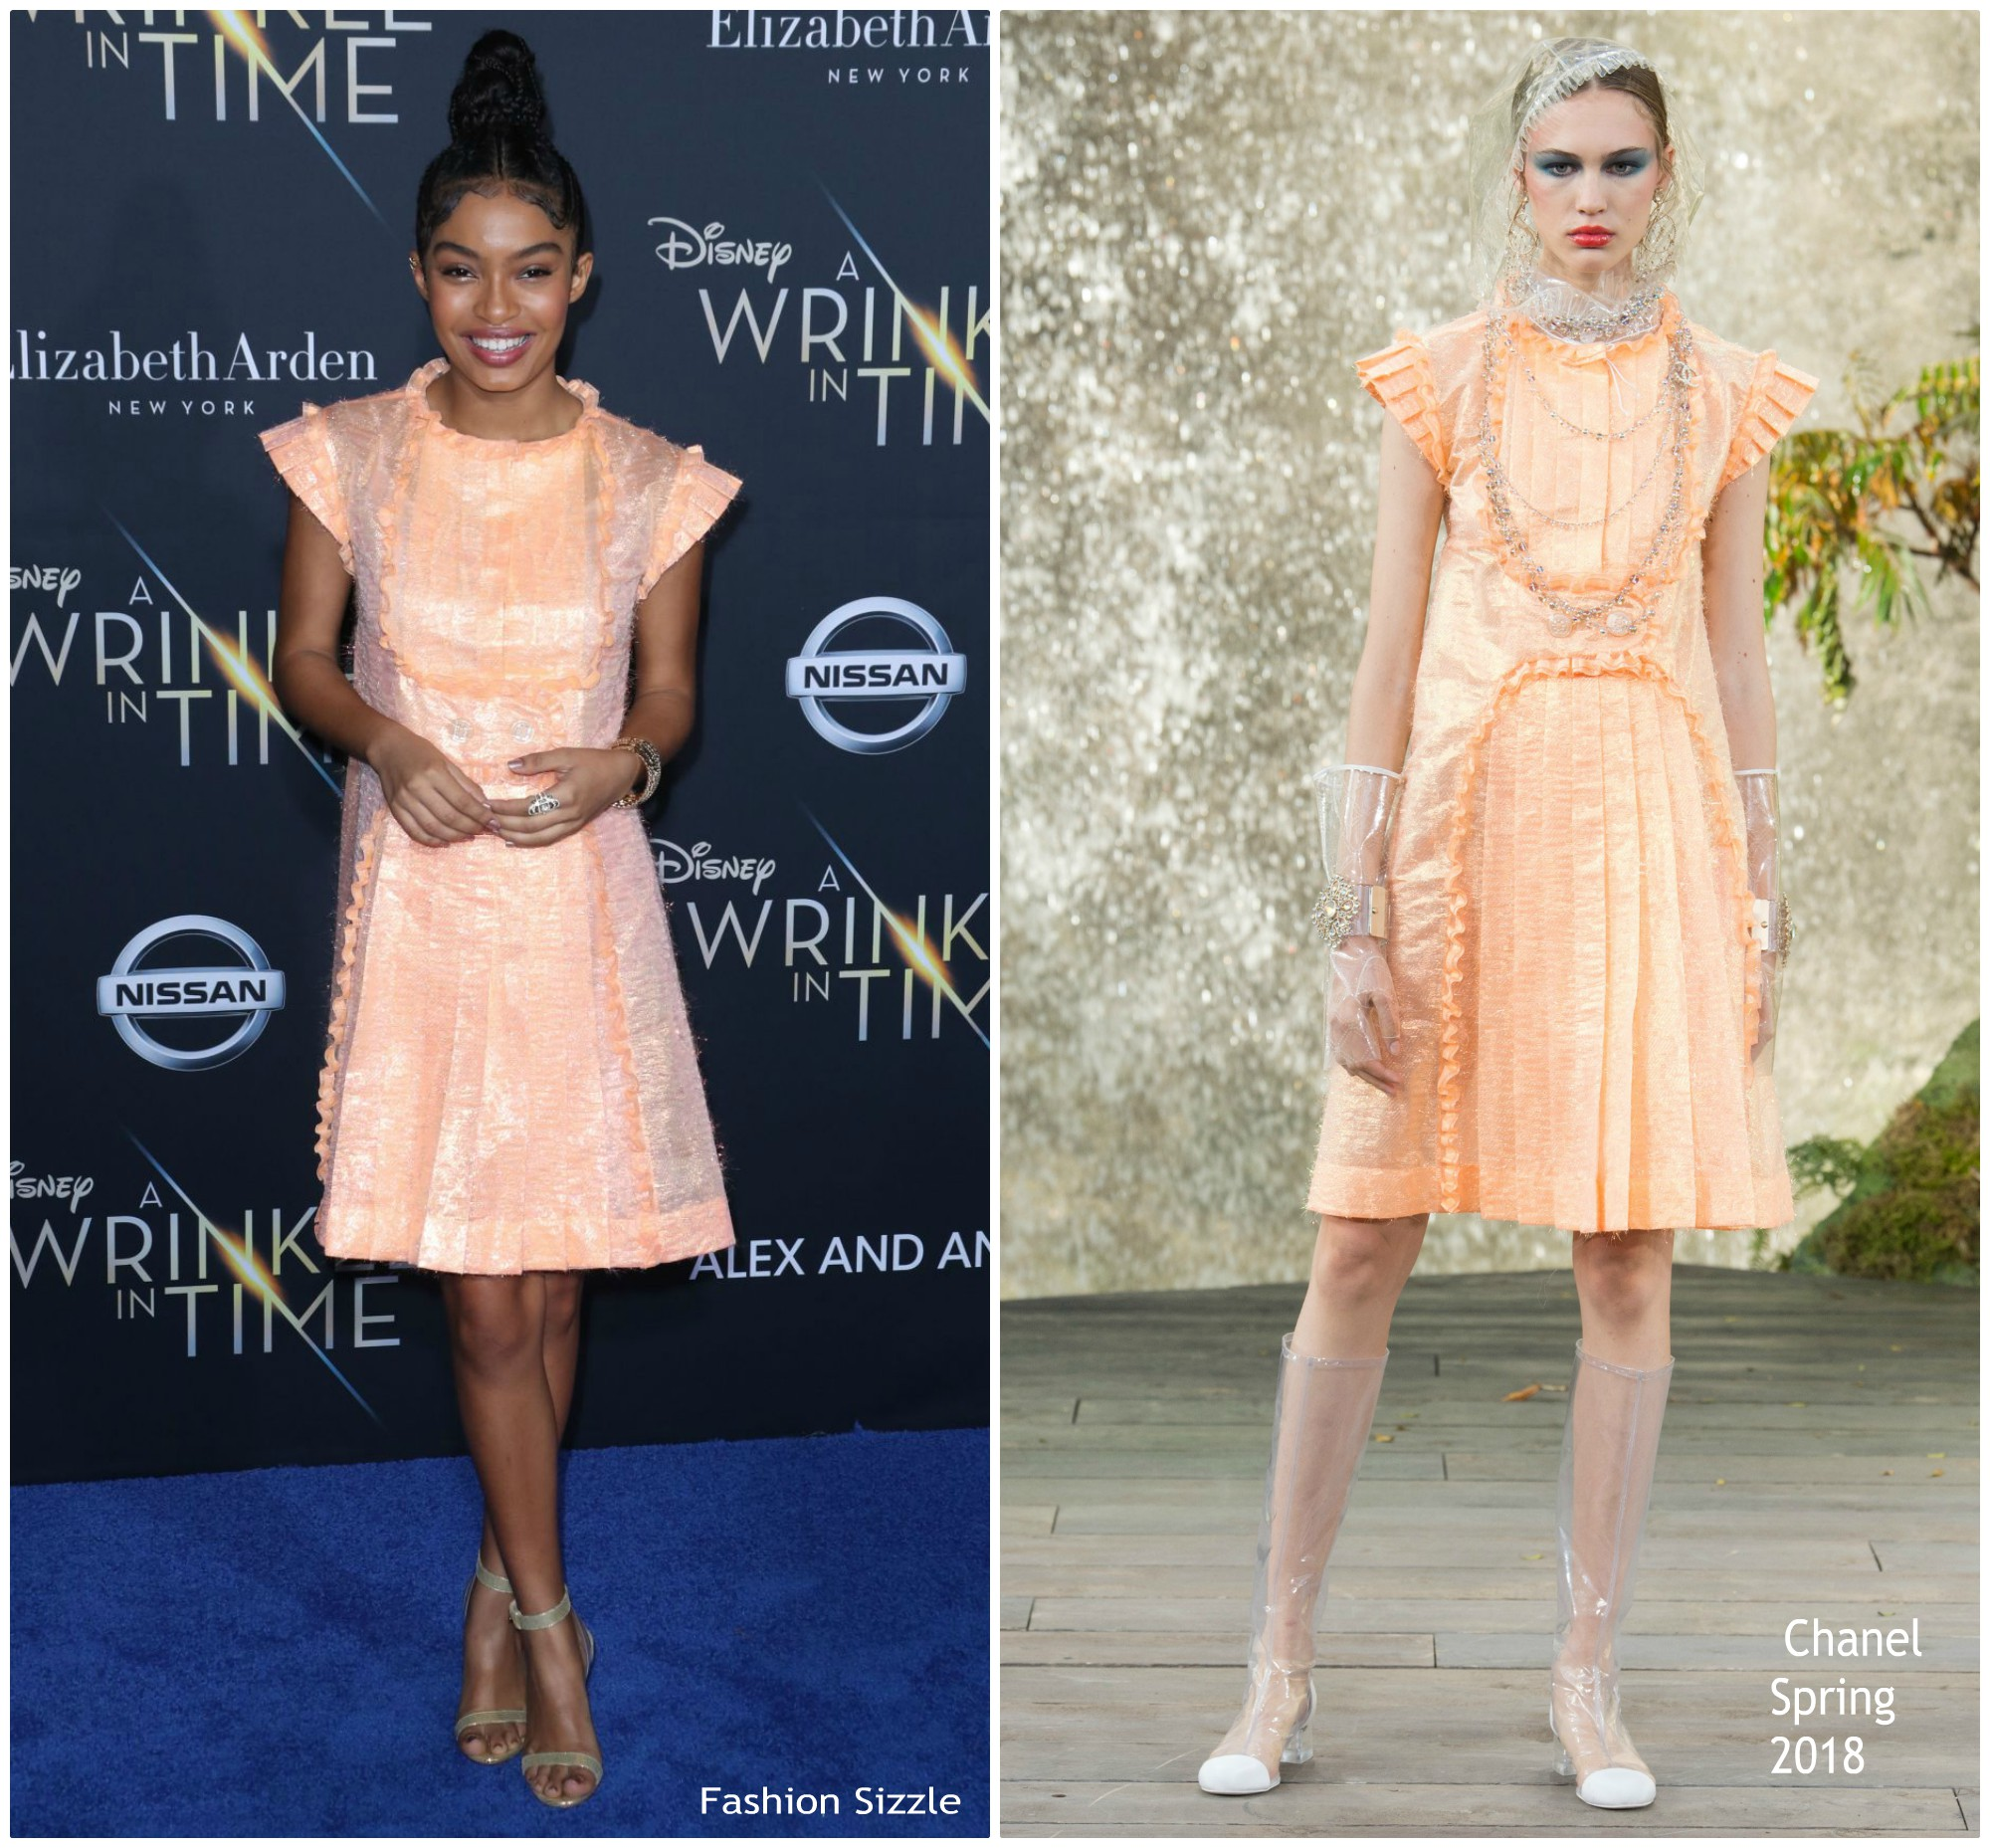 yara-shahidi-in-chanel-a-wrinkle-in-time-la-premiere